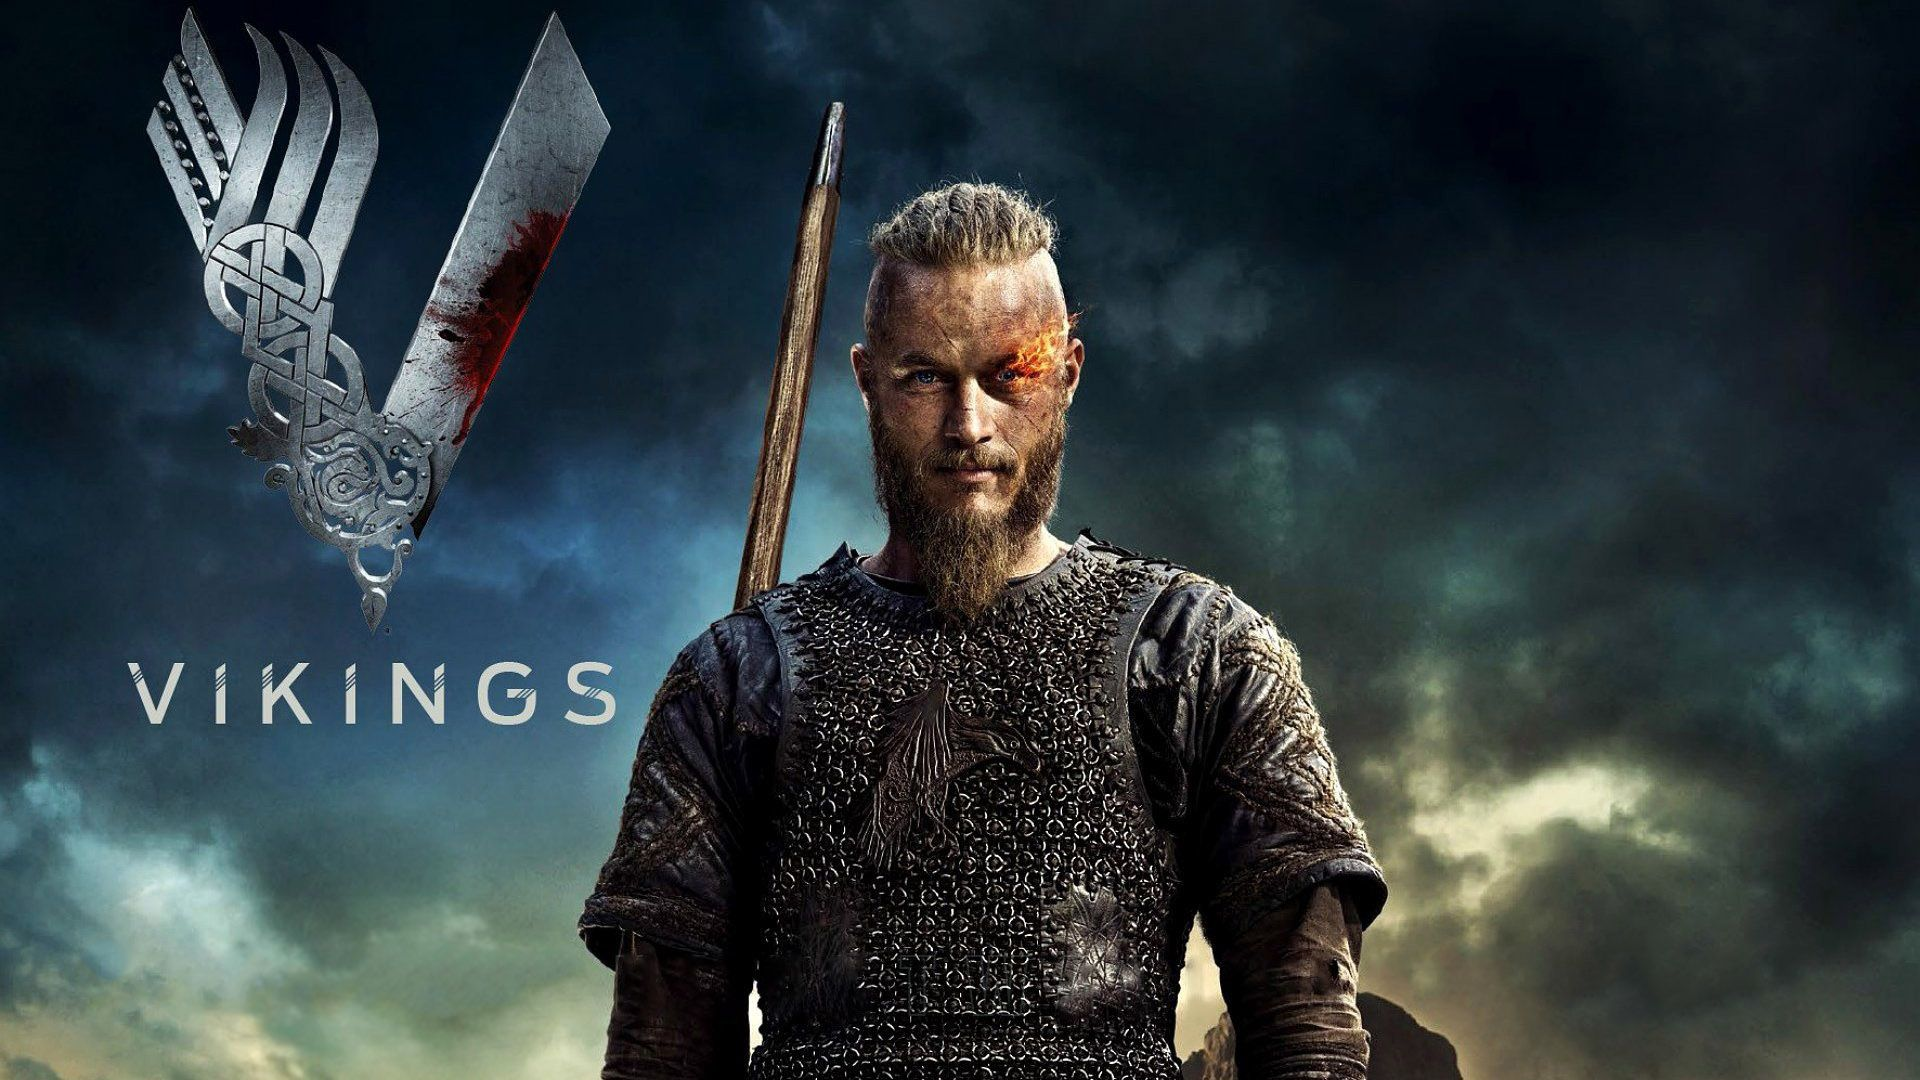 Get Travis Fimmel As Ragnar Lothbrok In Vikings Wallpaper Wide Or HD From TV Series Wallpapers Set